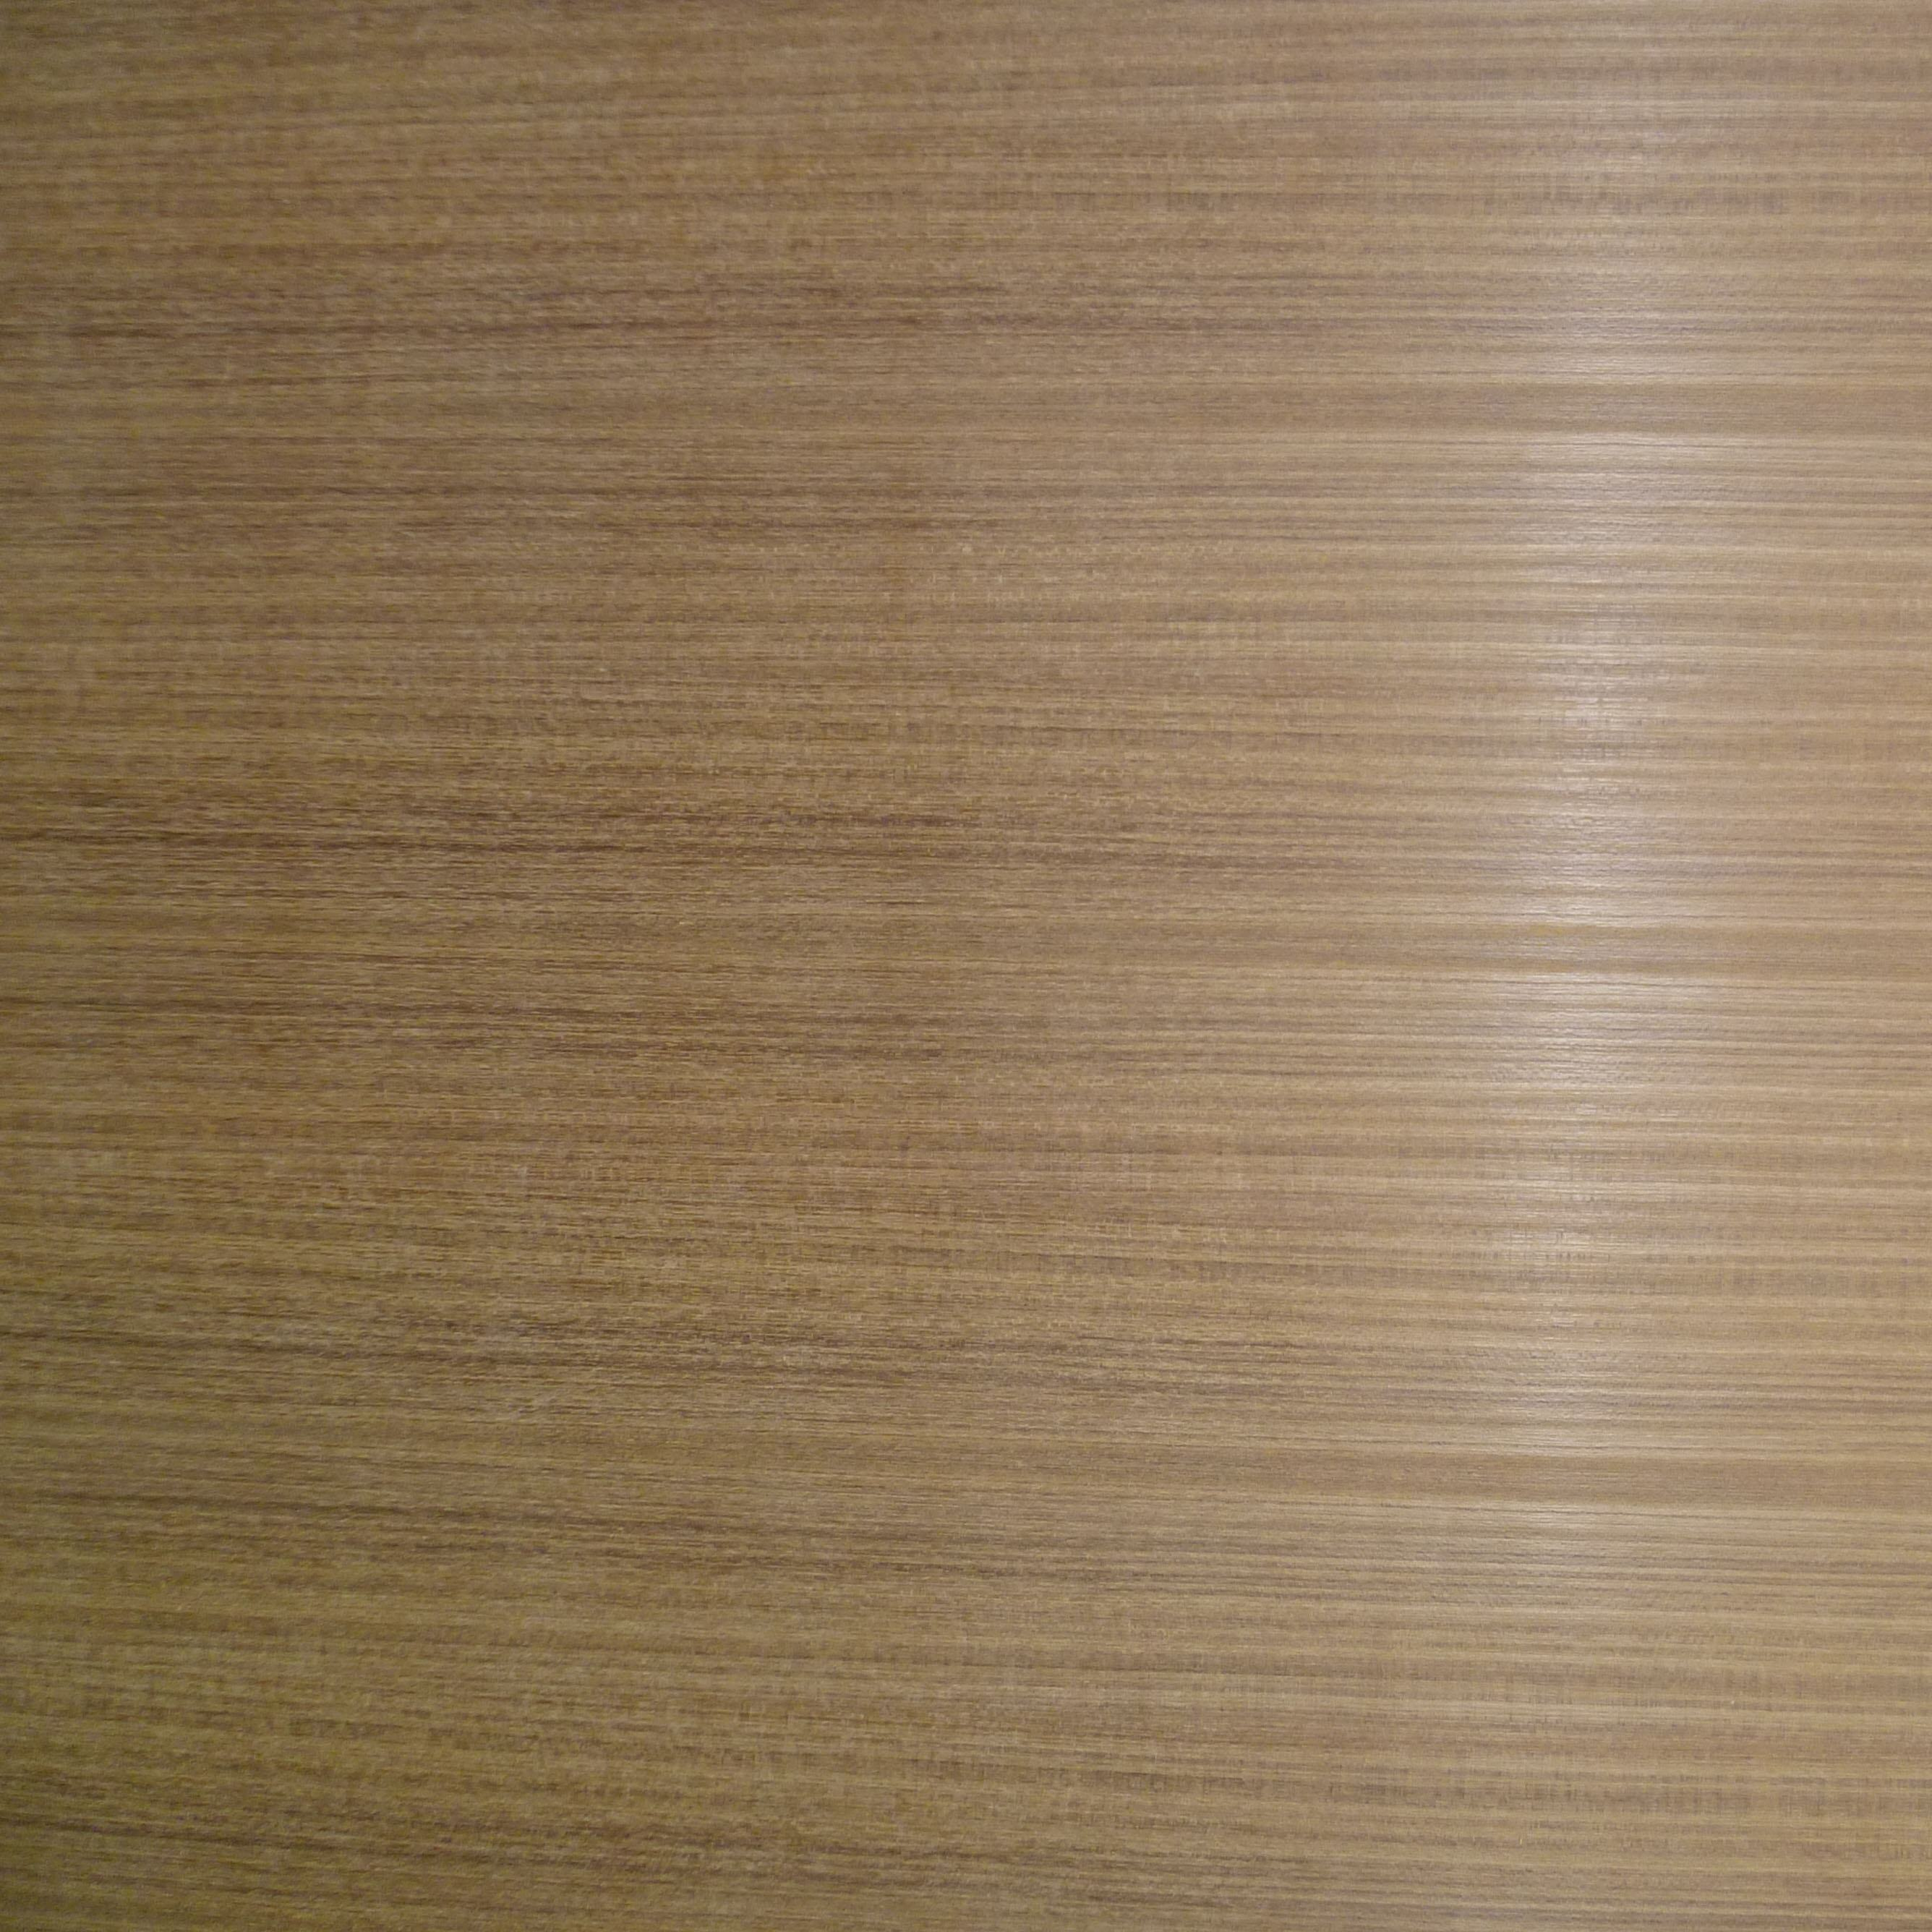 Commercial plywood teak veneer plywood brown for construction